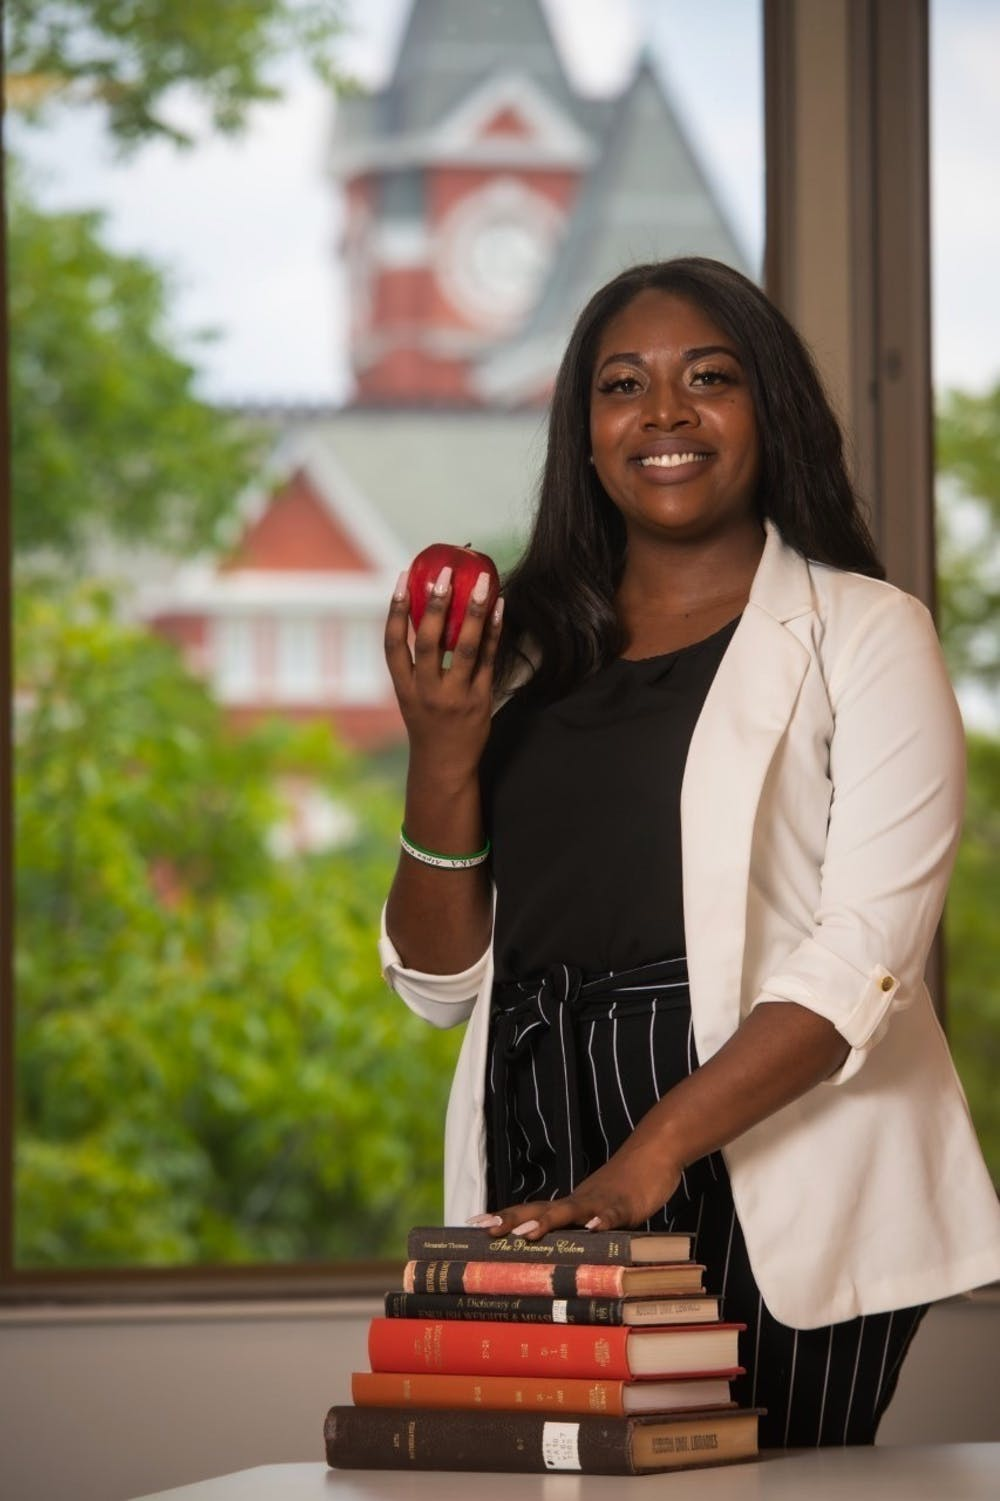 Ja'lia Taylor paves the way for underrepresented youth to attend AU